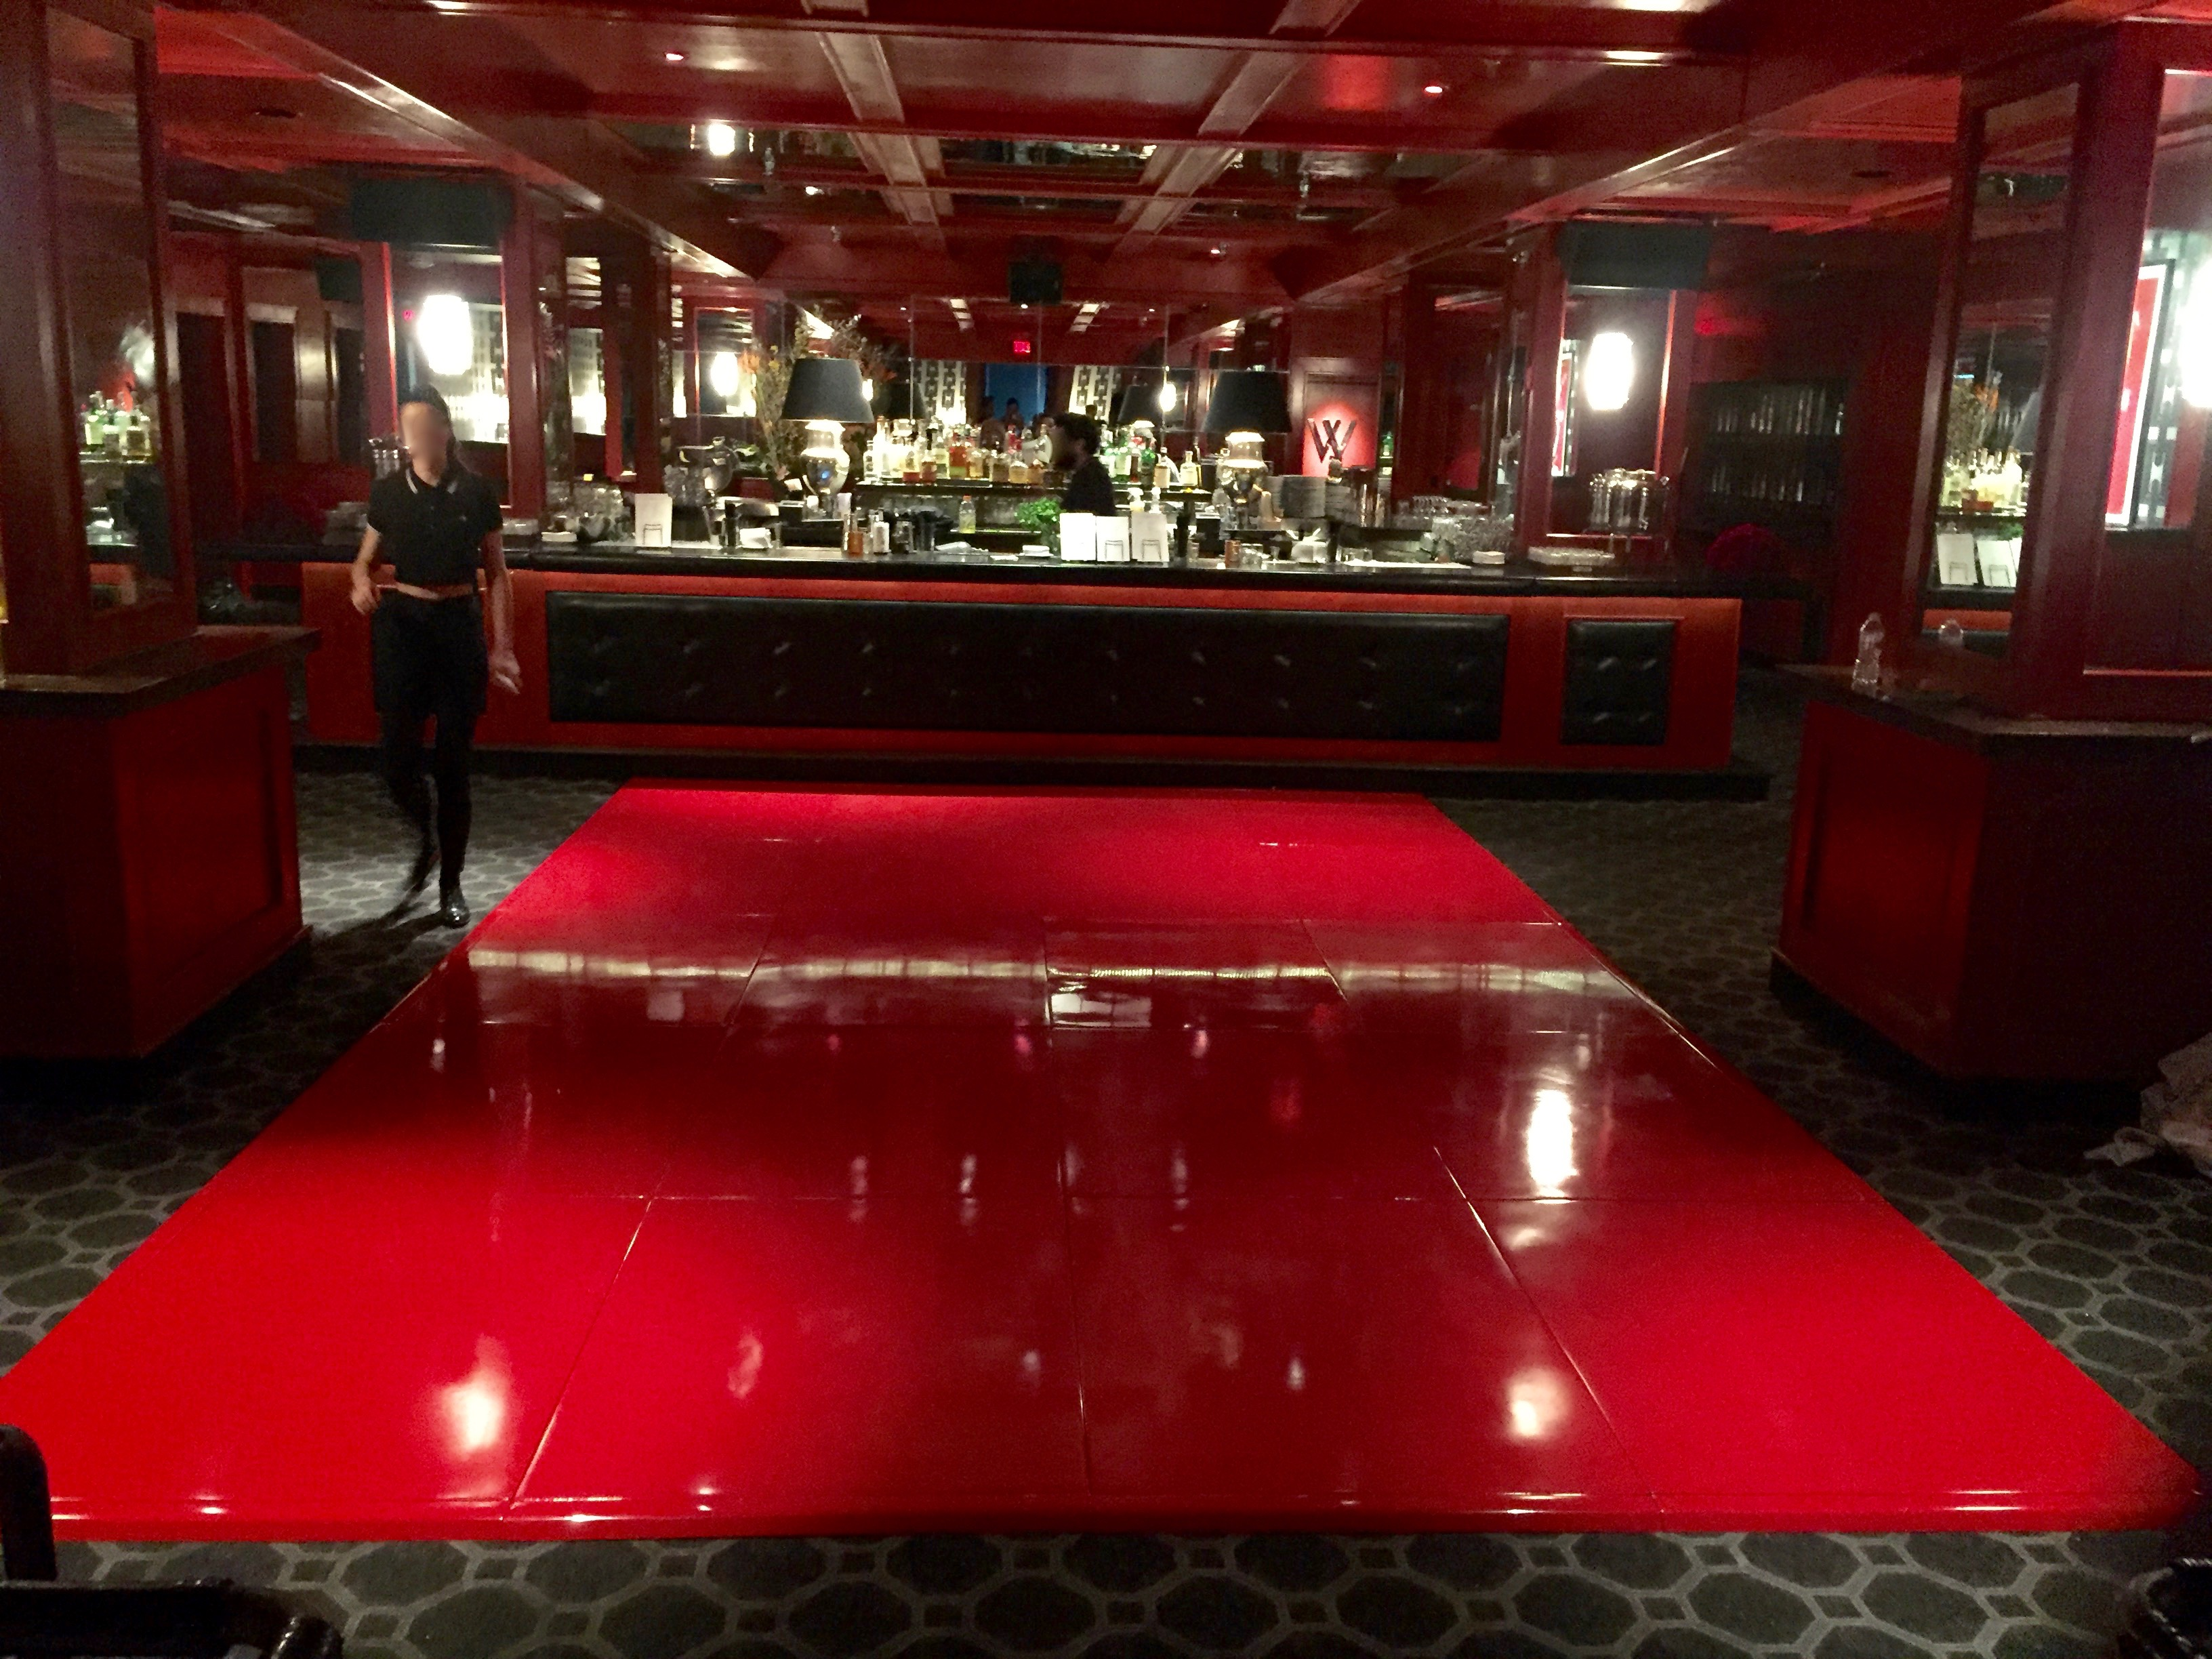 Red Seamless Dance floor